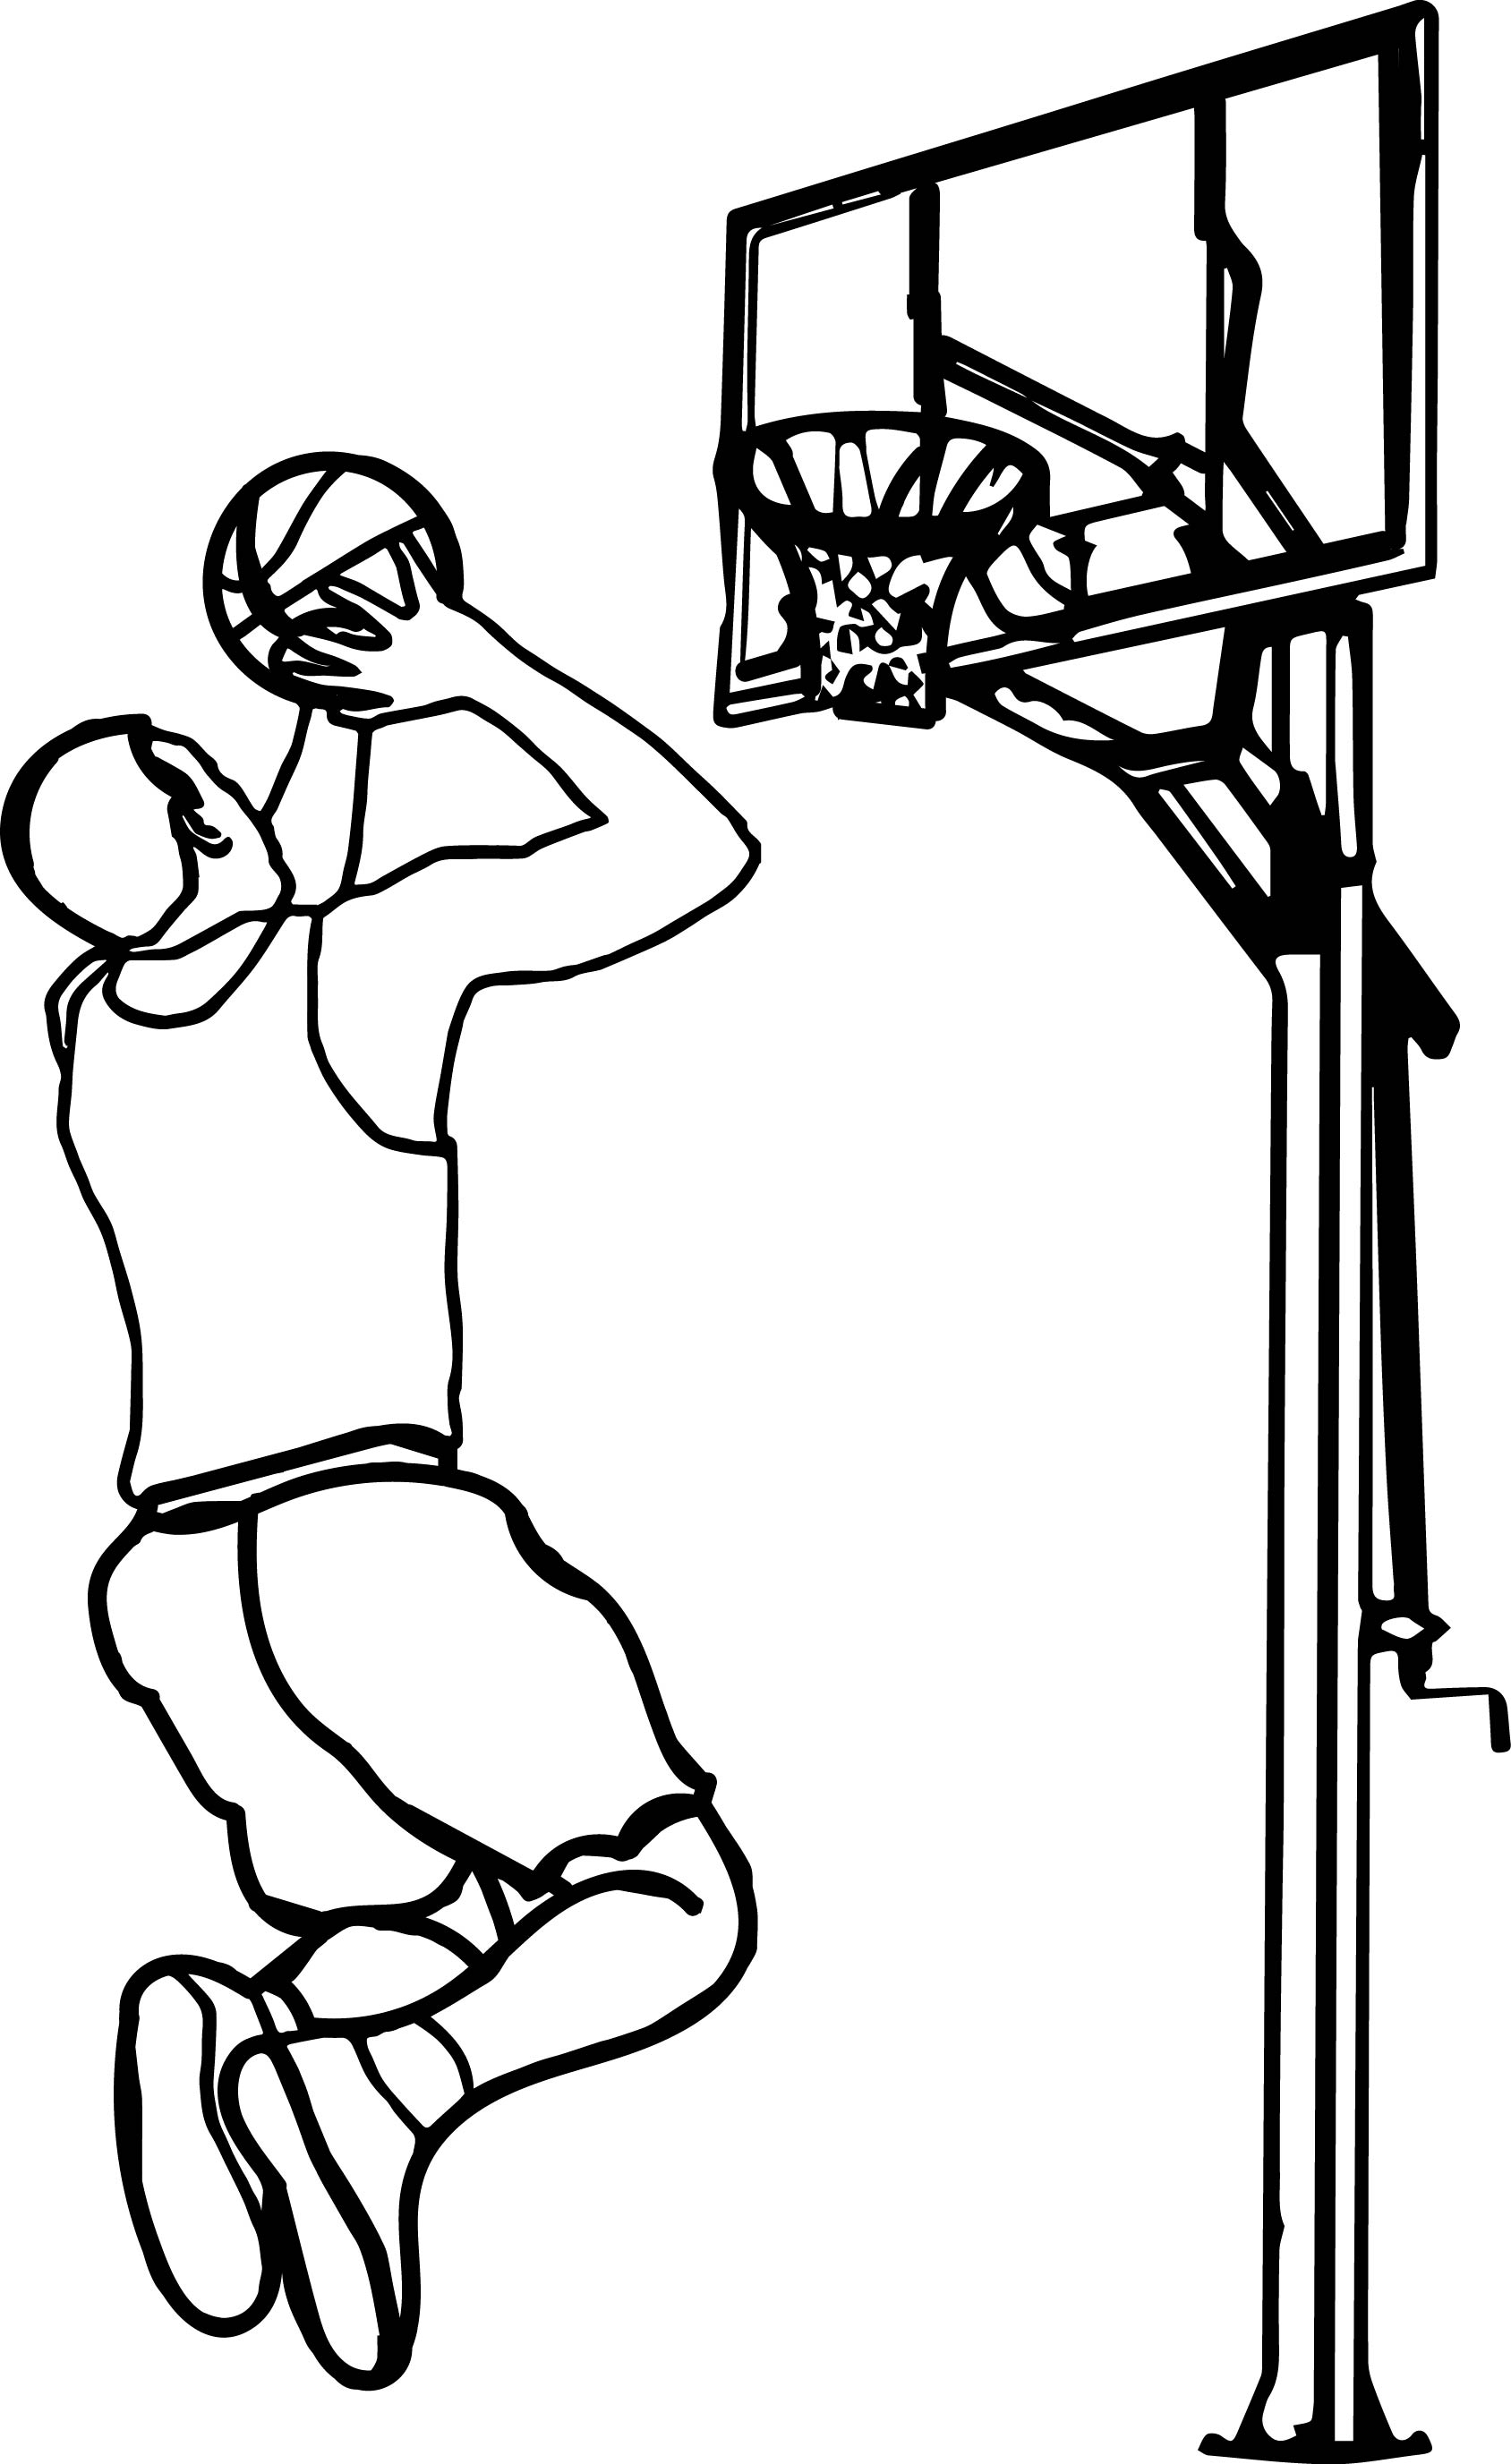 17461 Basketball free clipart.